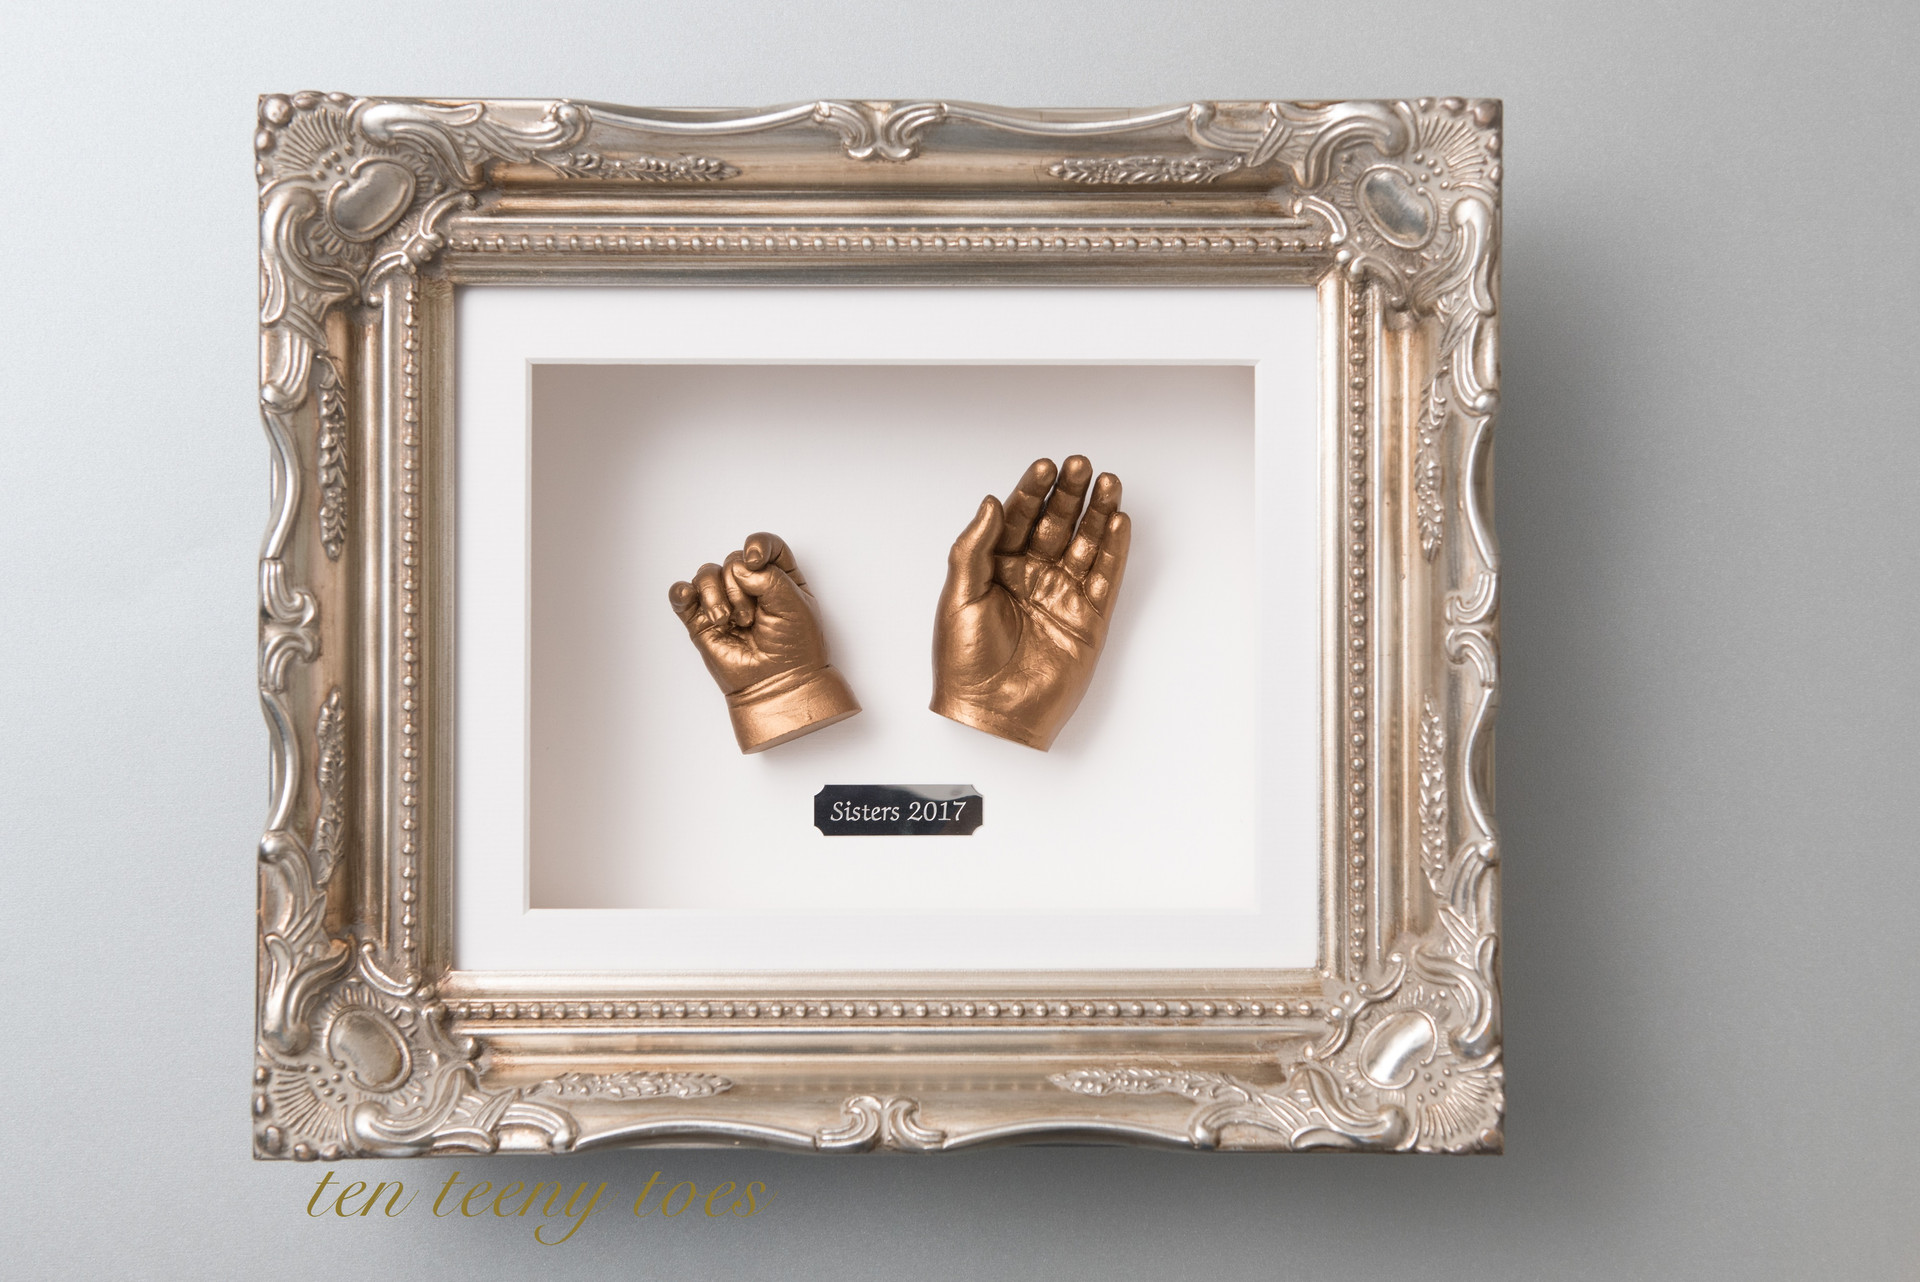 Two sibling hand casts in a platinum vintage frame with sisters name plate.